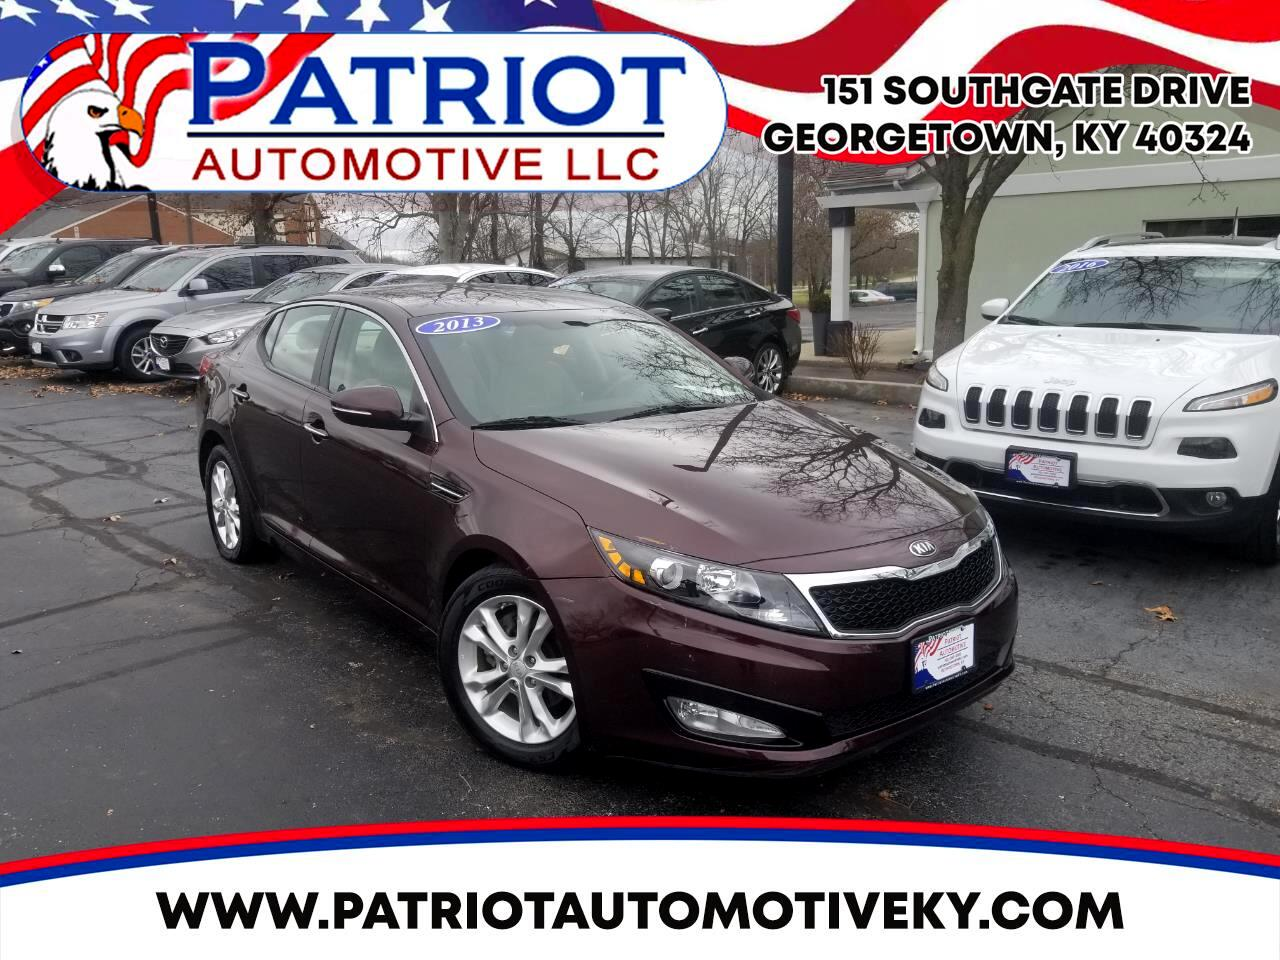 Kia Optima 4dr Sdn LX 2013